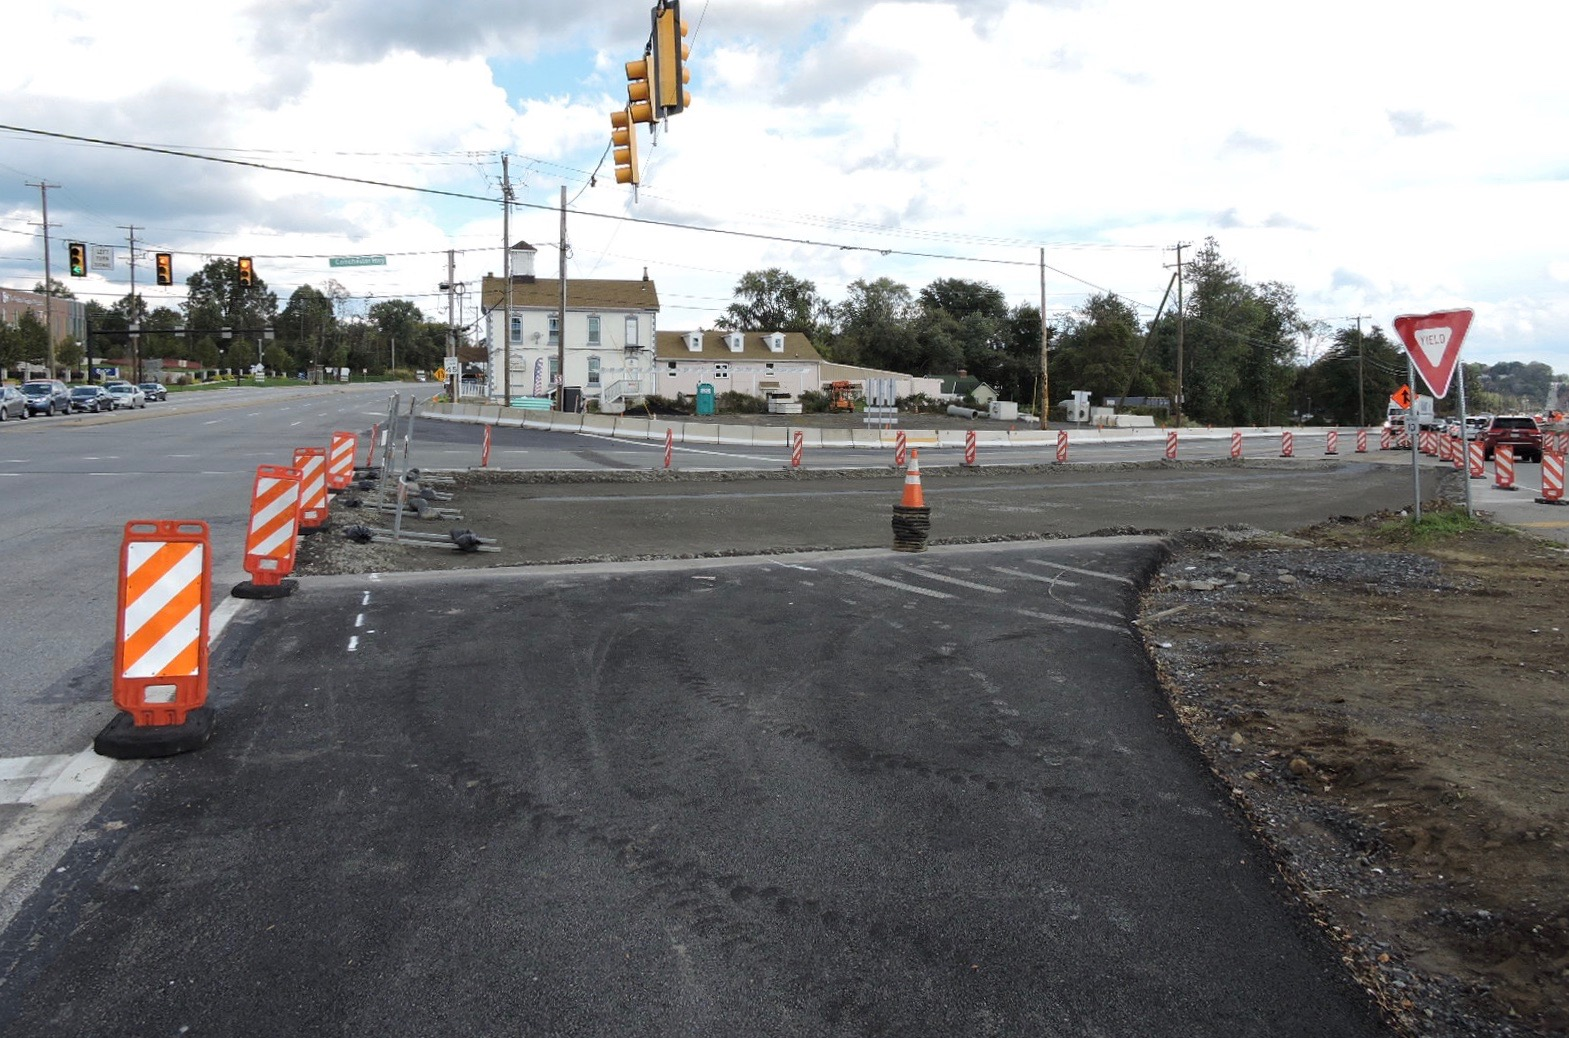 New intersection at U.S. 322 (Conchester Highway) and U.S. 1 (Baltimore Pike)